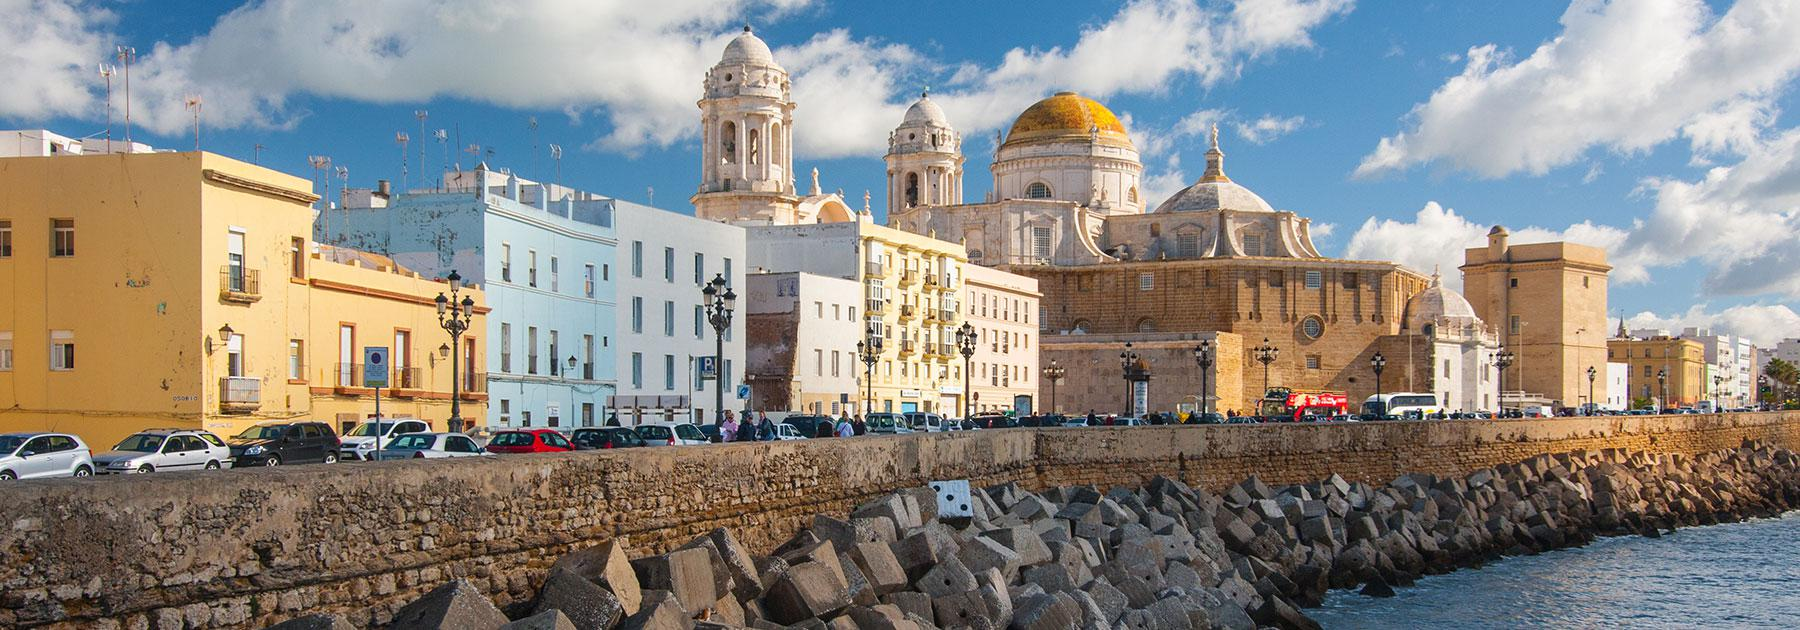 Spain Vacations With Airfare Trip To Spain From Go Today